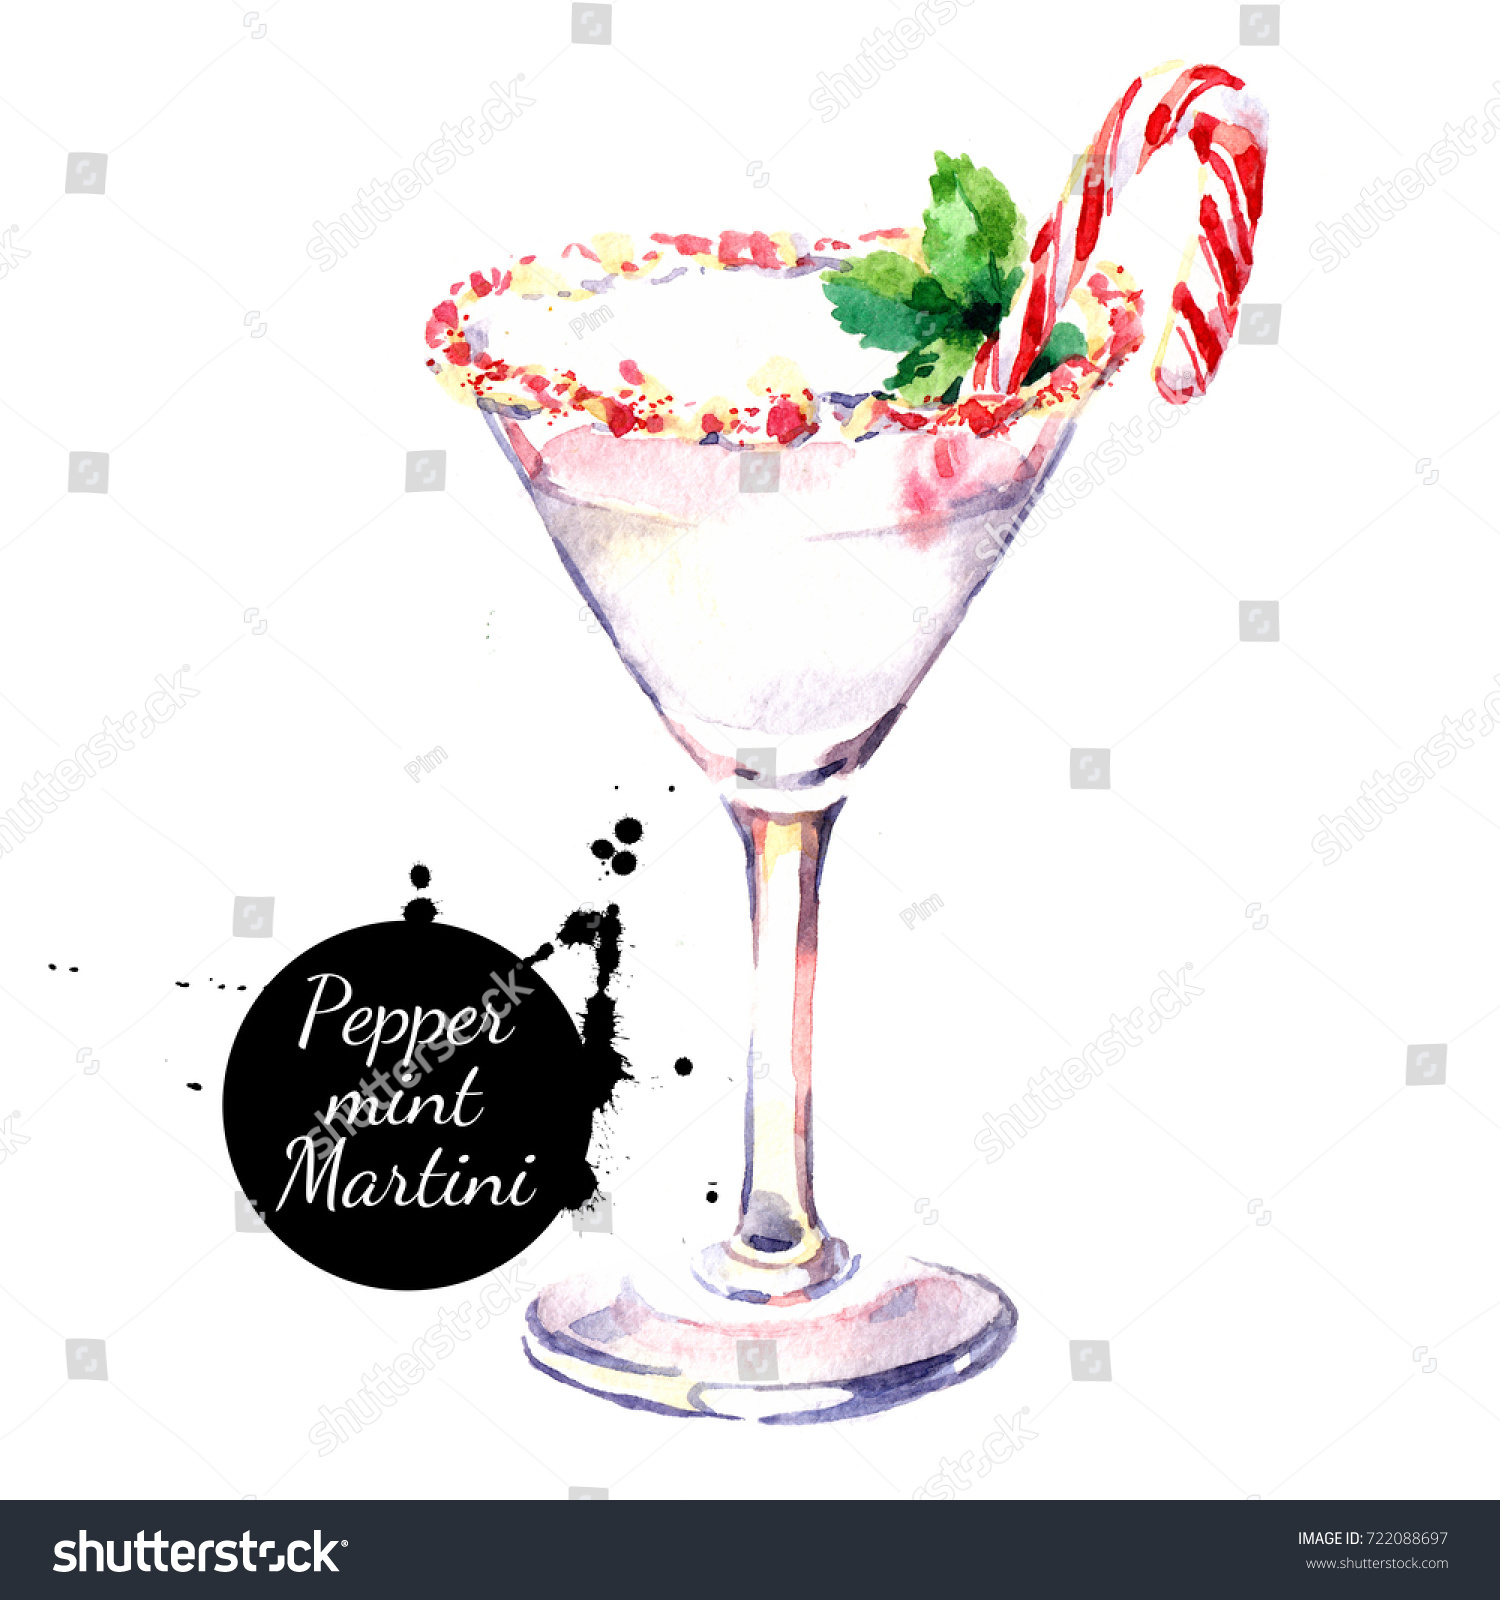 watercolor hand drawn sketch christmas cocktail peppermint martini isolated illustration on white background - White Christmas Martini